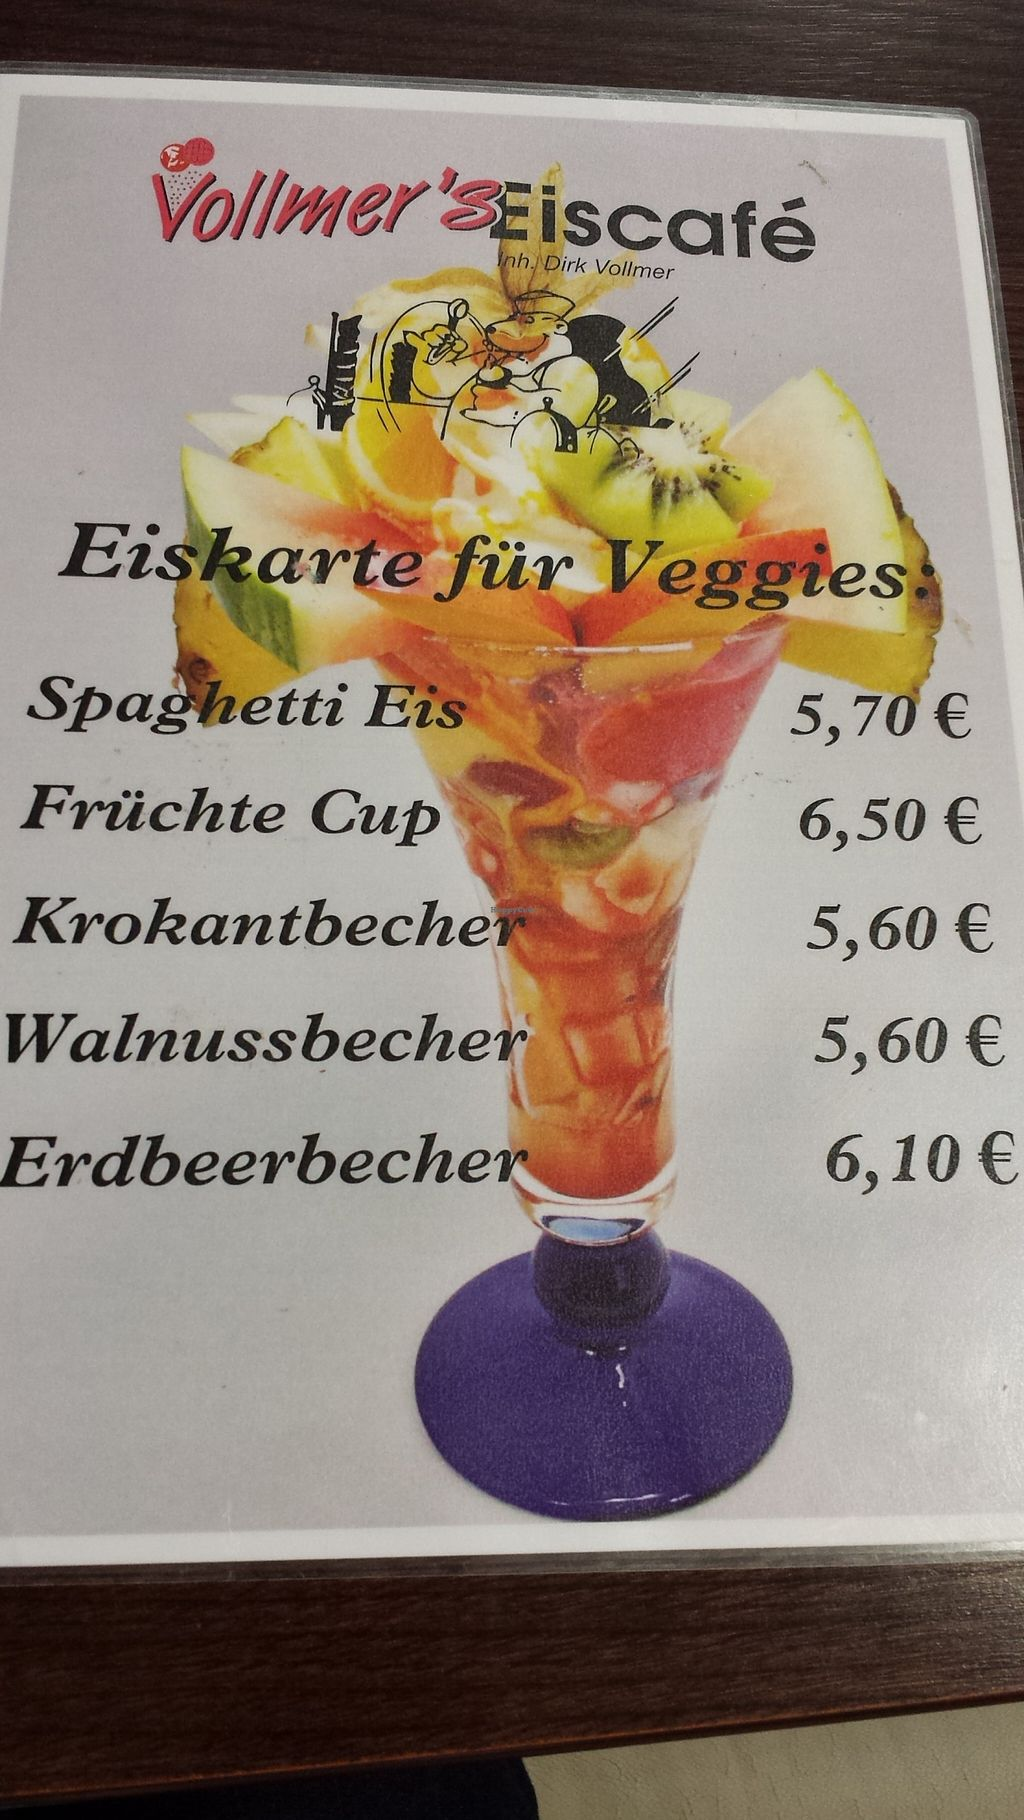 """Photo of Vollmer's Eiscafe  by <a href=""""/members/profile/cherryblossom153"""">cherryblossom153</a> <br/>Speisekarte <br/> August 24, 2015  - <a href='/contact/abuse/image/58590/115028'>Report</a>"""